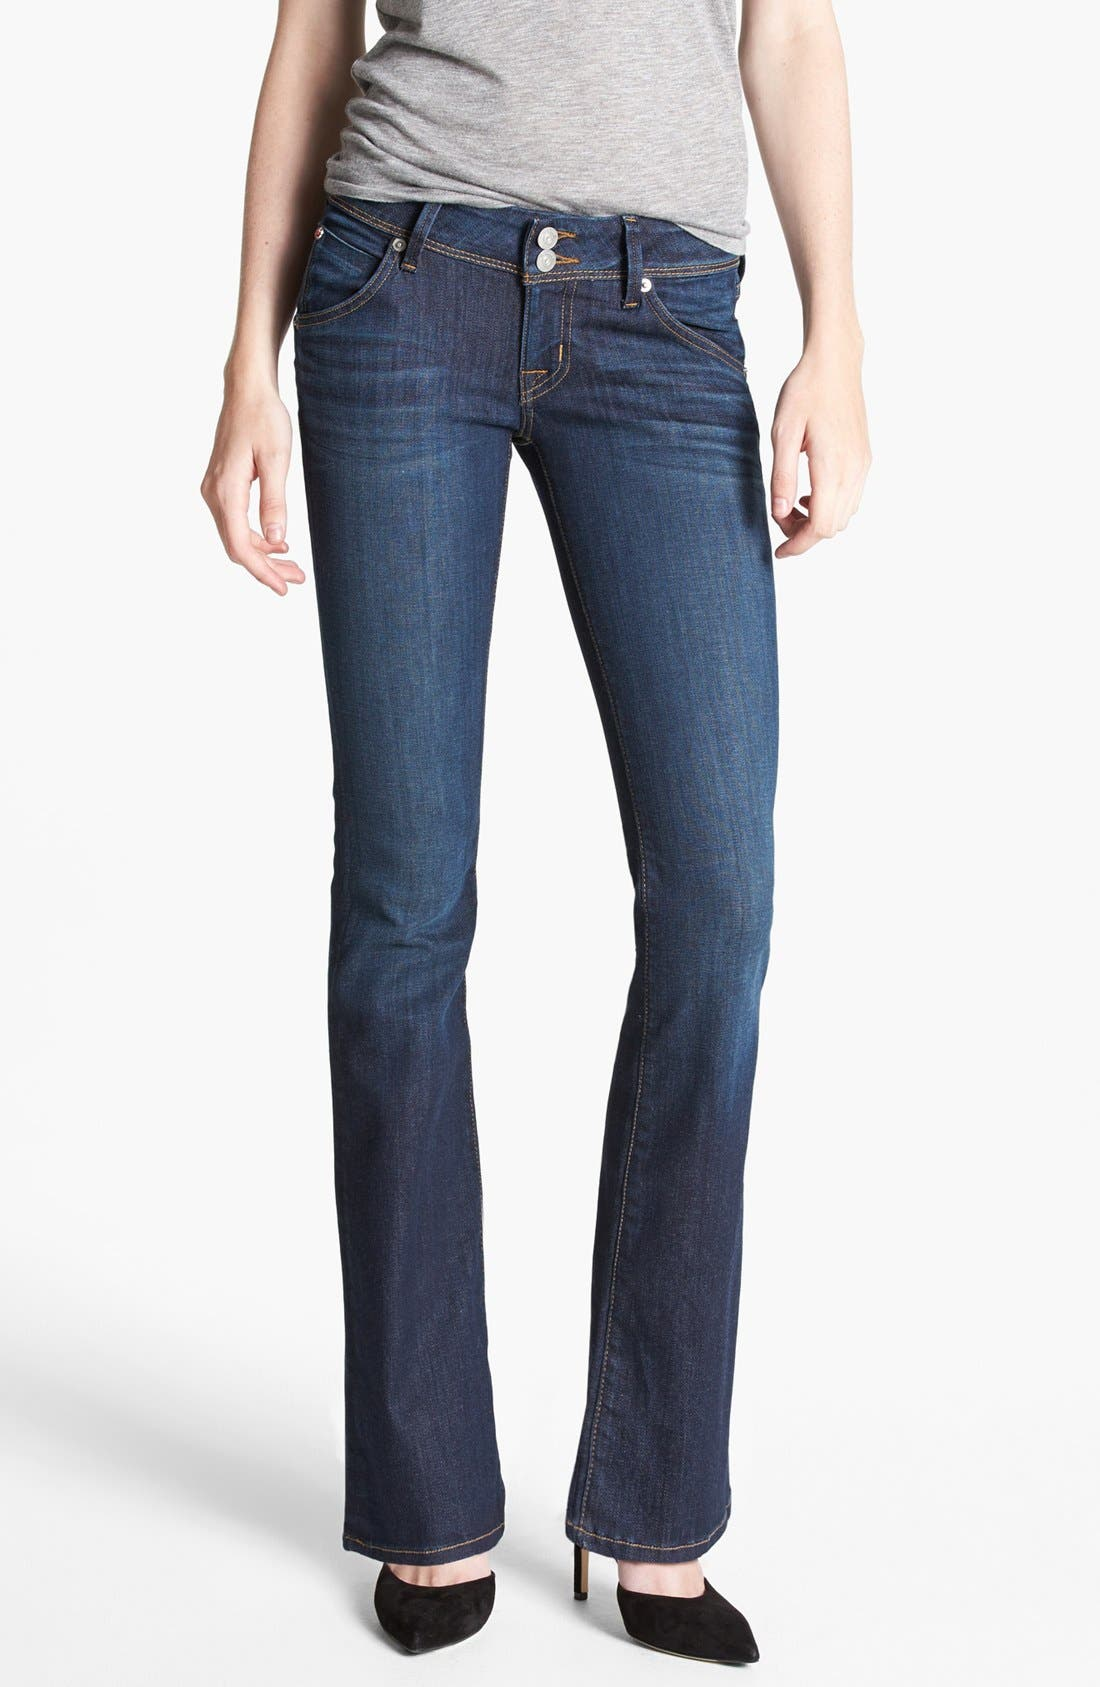 Alternate Image 1 Selected - Hudson Jeans 'Beth' Baby Bootcut Jeans (Iconic) (Petite)